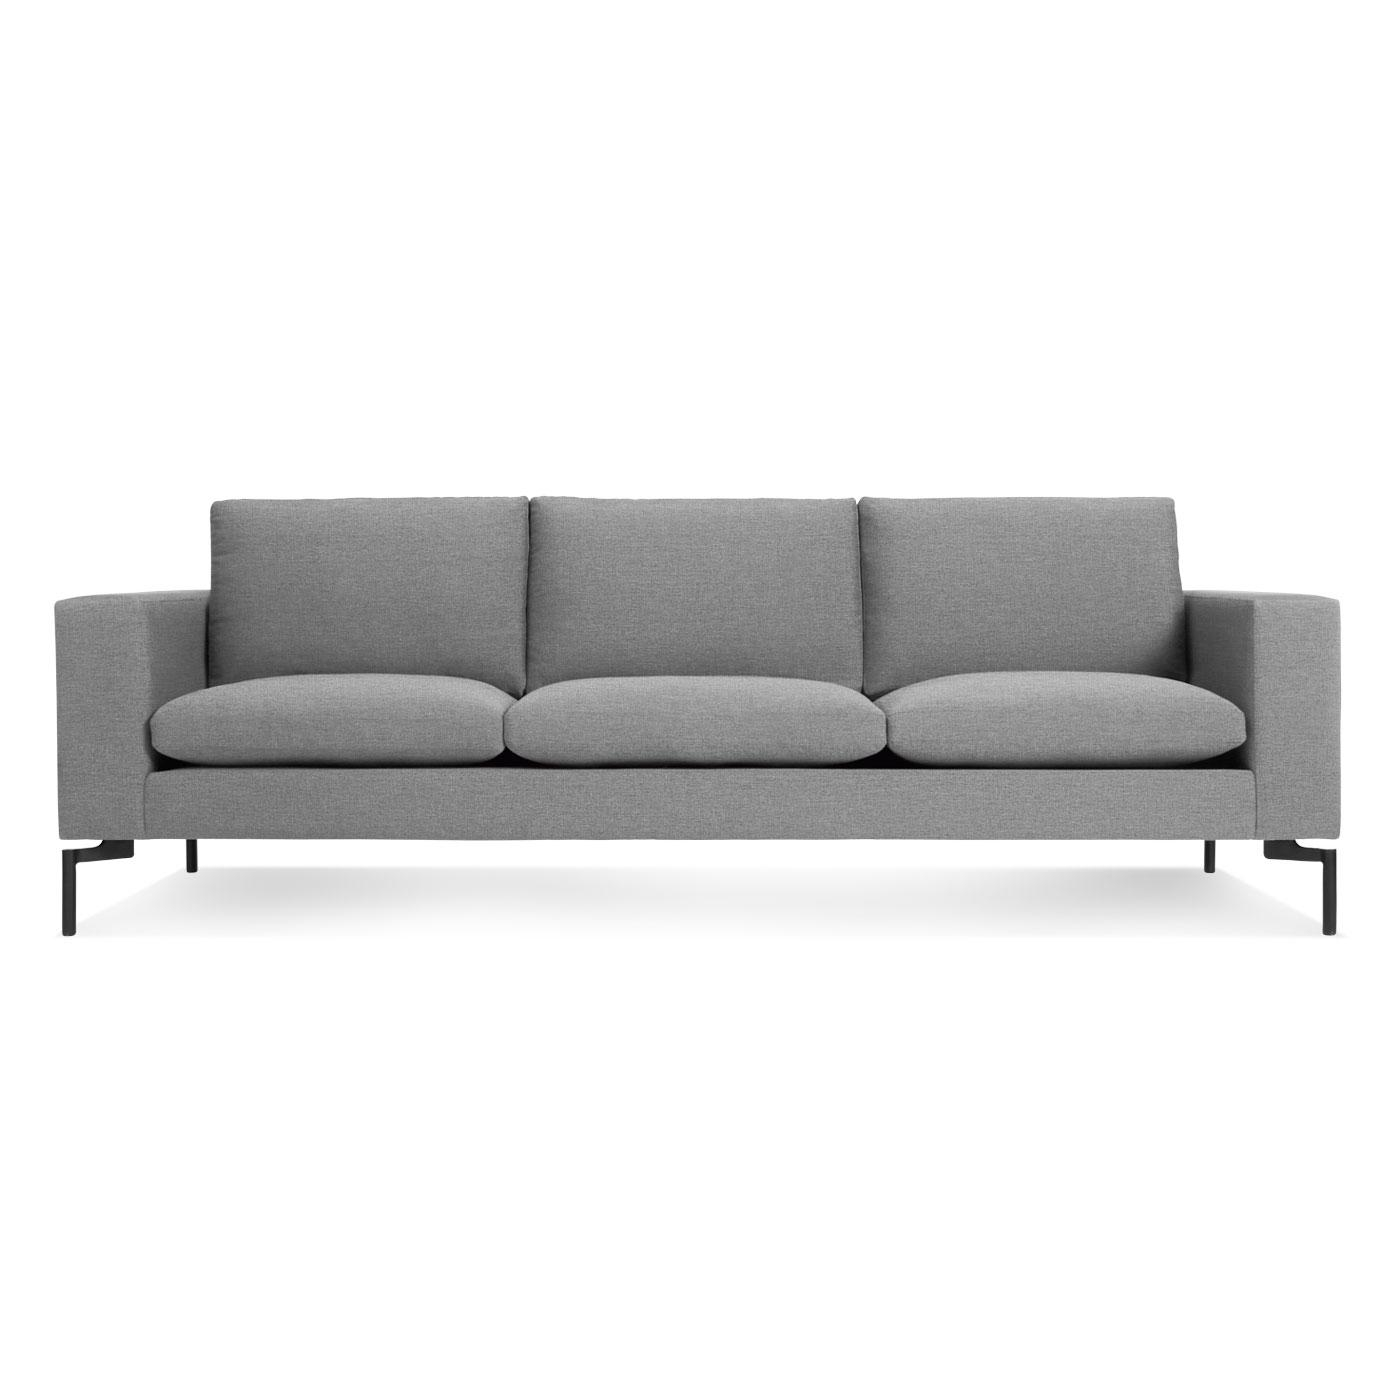 "New Standard 92"" Sofa - Contemporary Sofas 